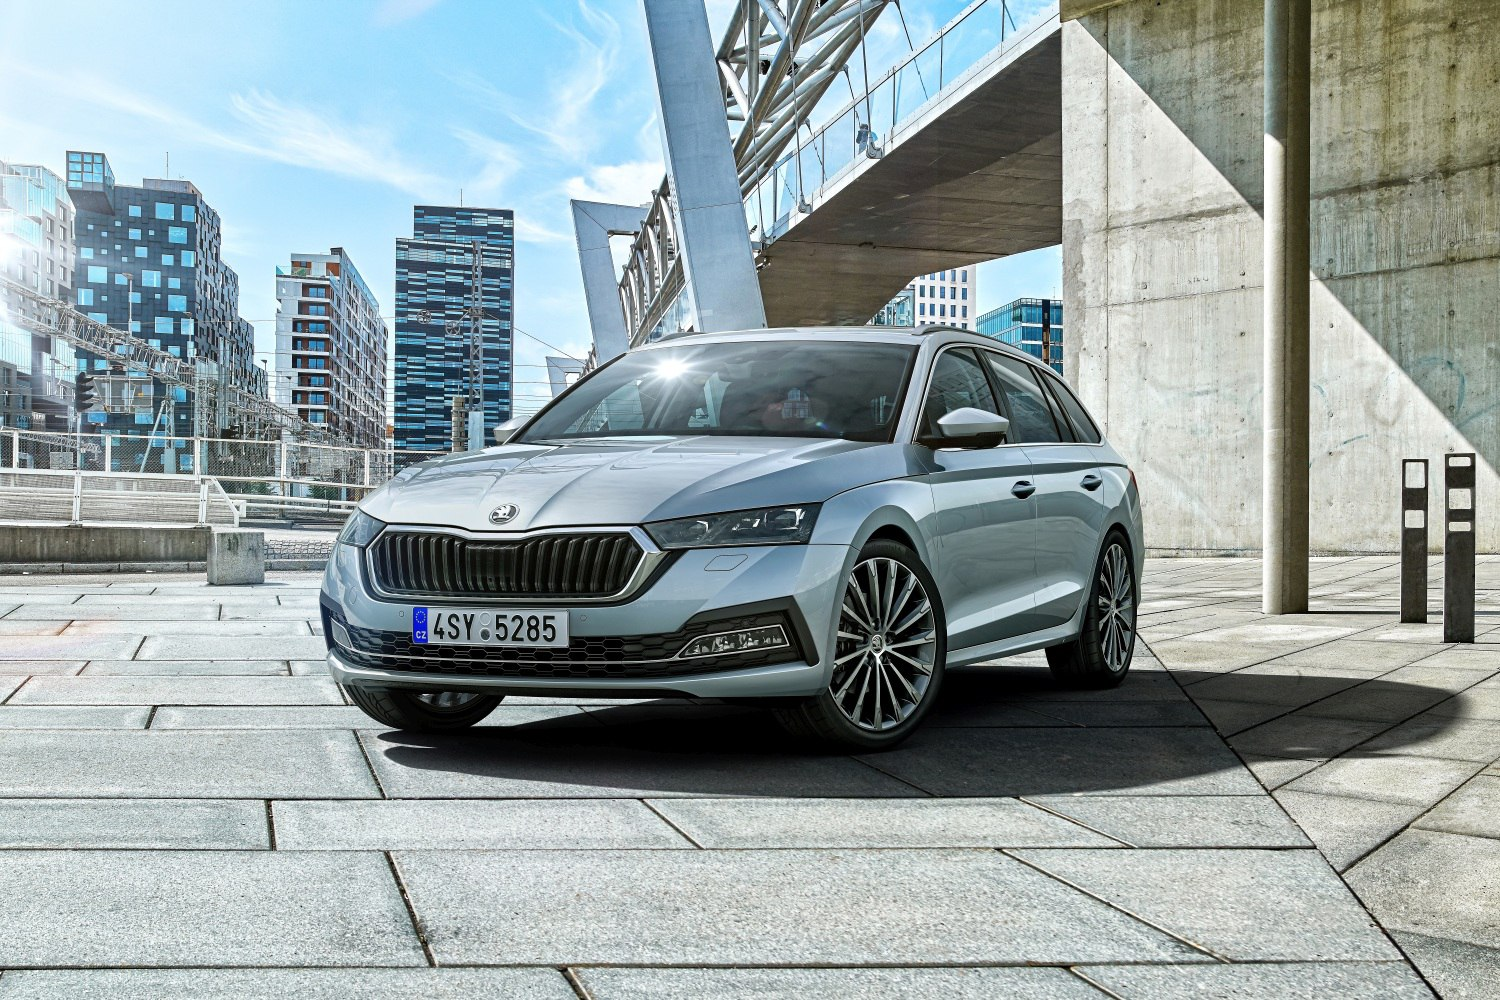 2020 Skoda Octavia Iv Combi Rs Iv 1 4 Tsi 245 Hp Plug In Hybrid Dsg Technical Specs Data Fuel Consumption Dimensions